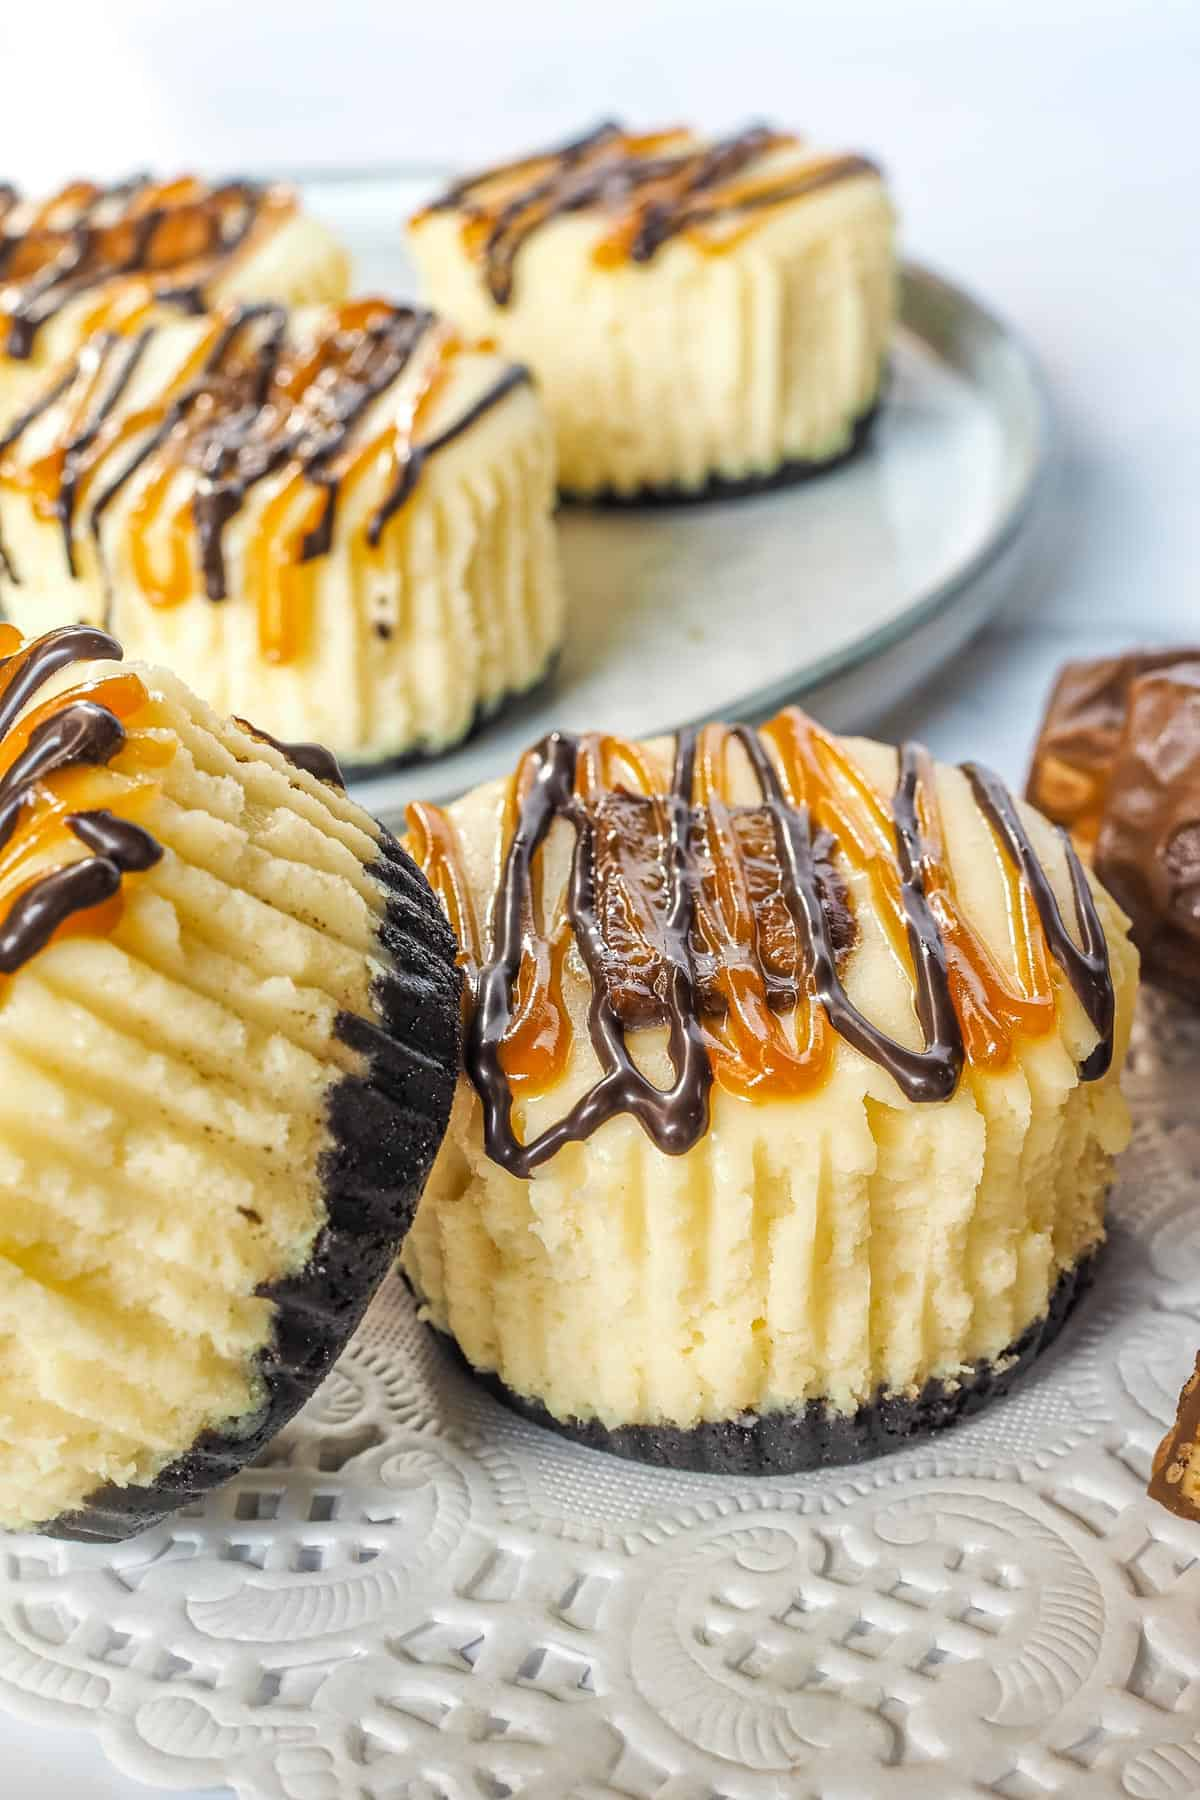 Mini cheesecakes decorated with Snickers chocolate and chocolate and caramel drizzles on a grey plate